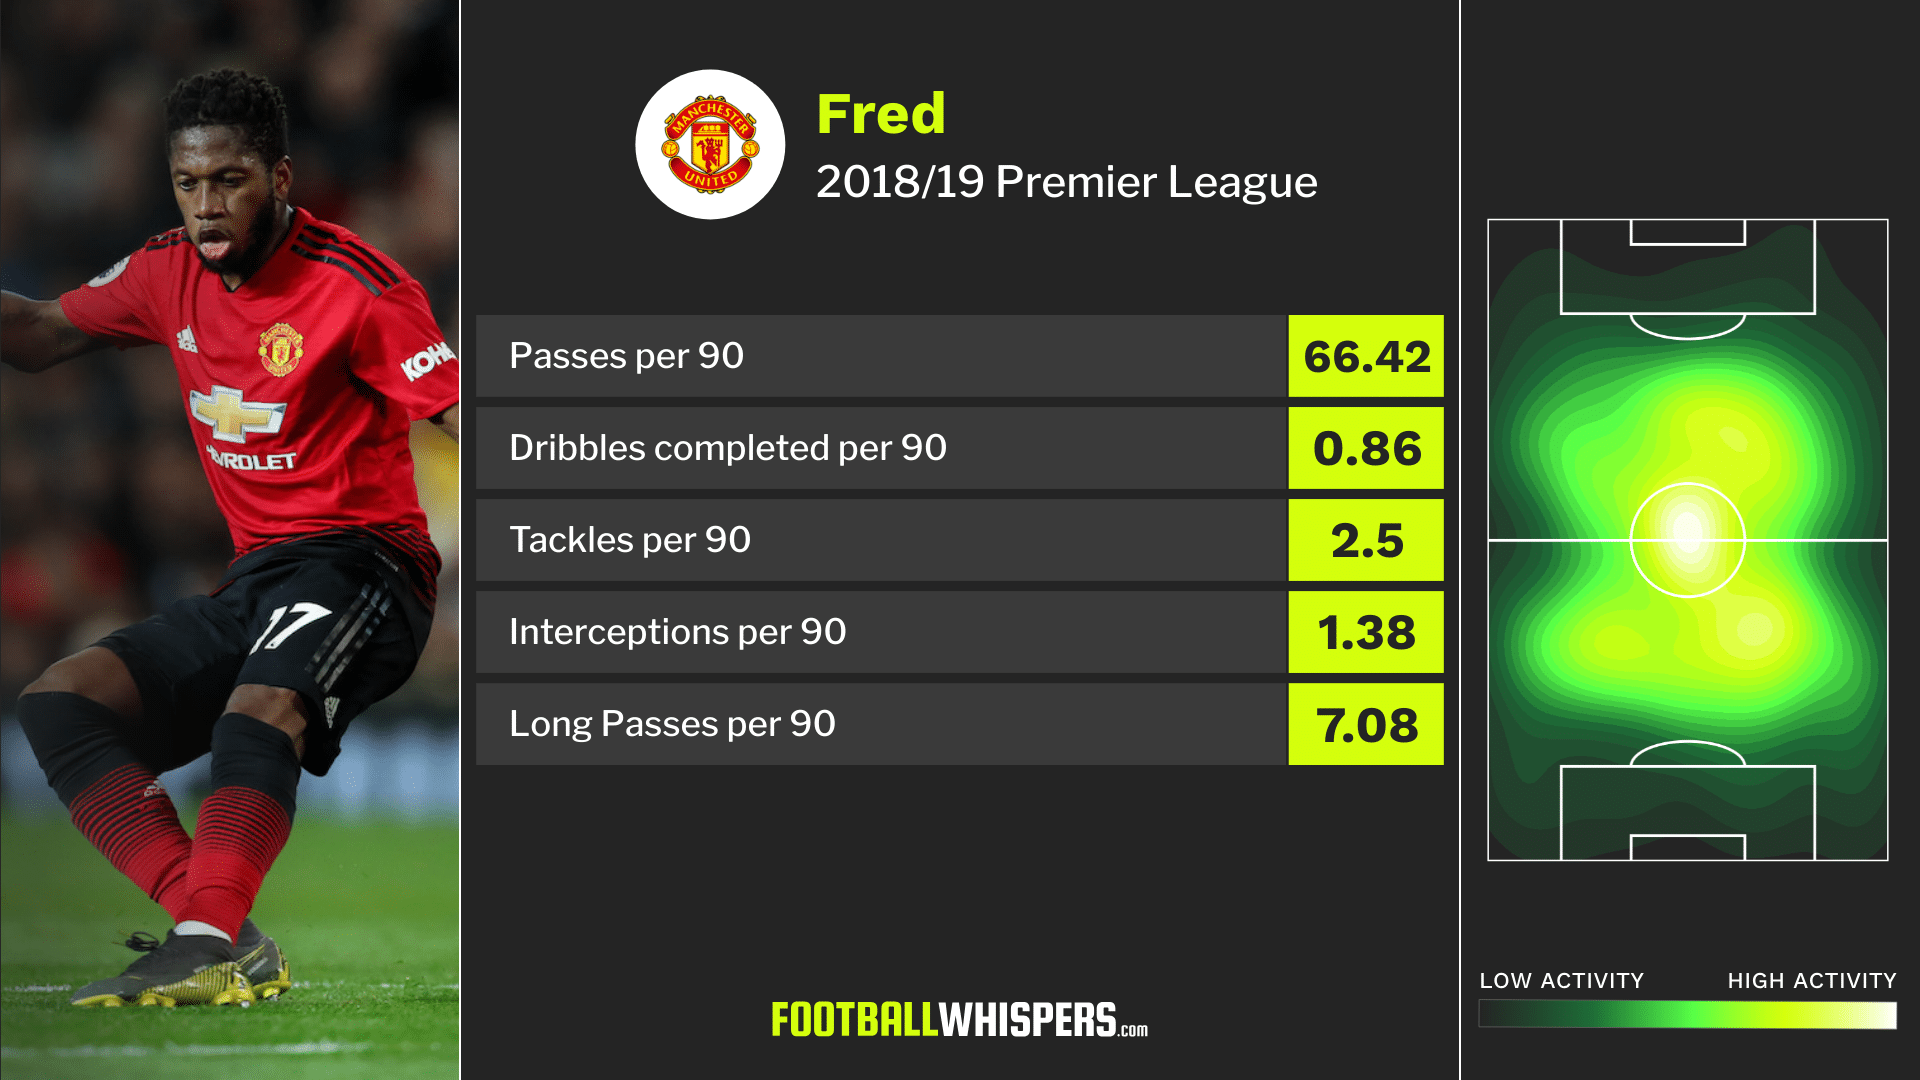 Manchester United midfielder Fred's 2018/19 Premier League stats